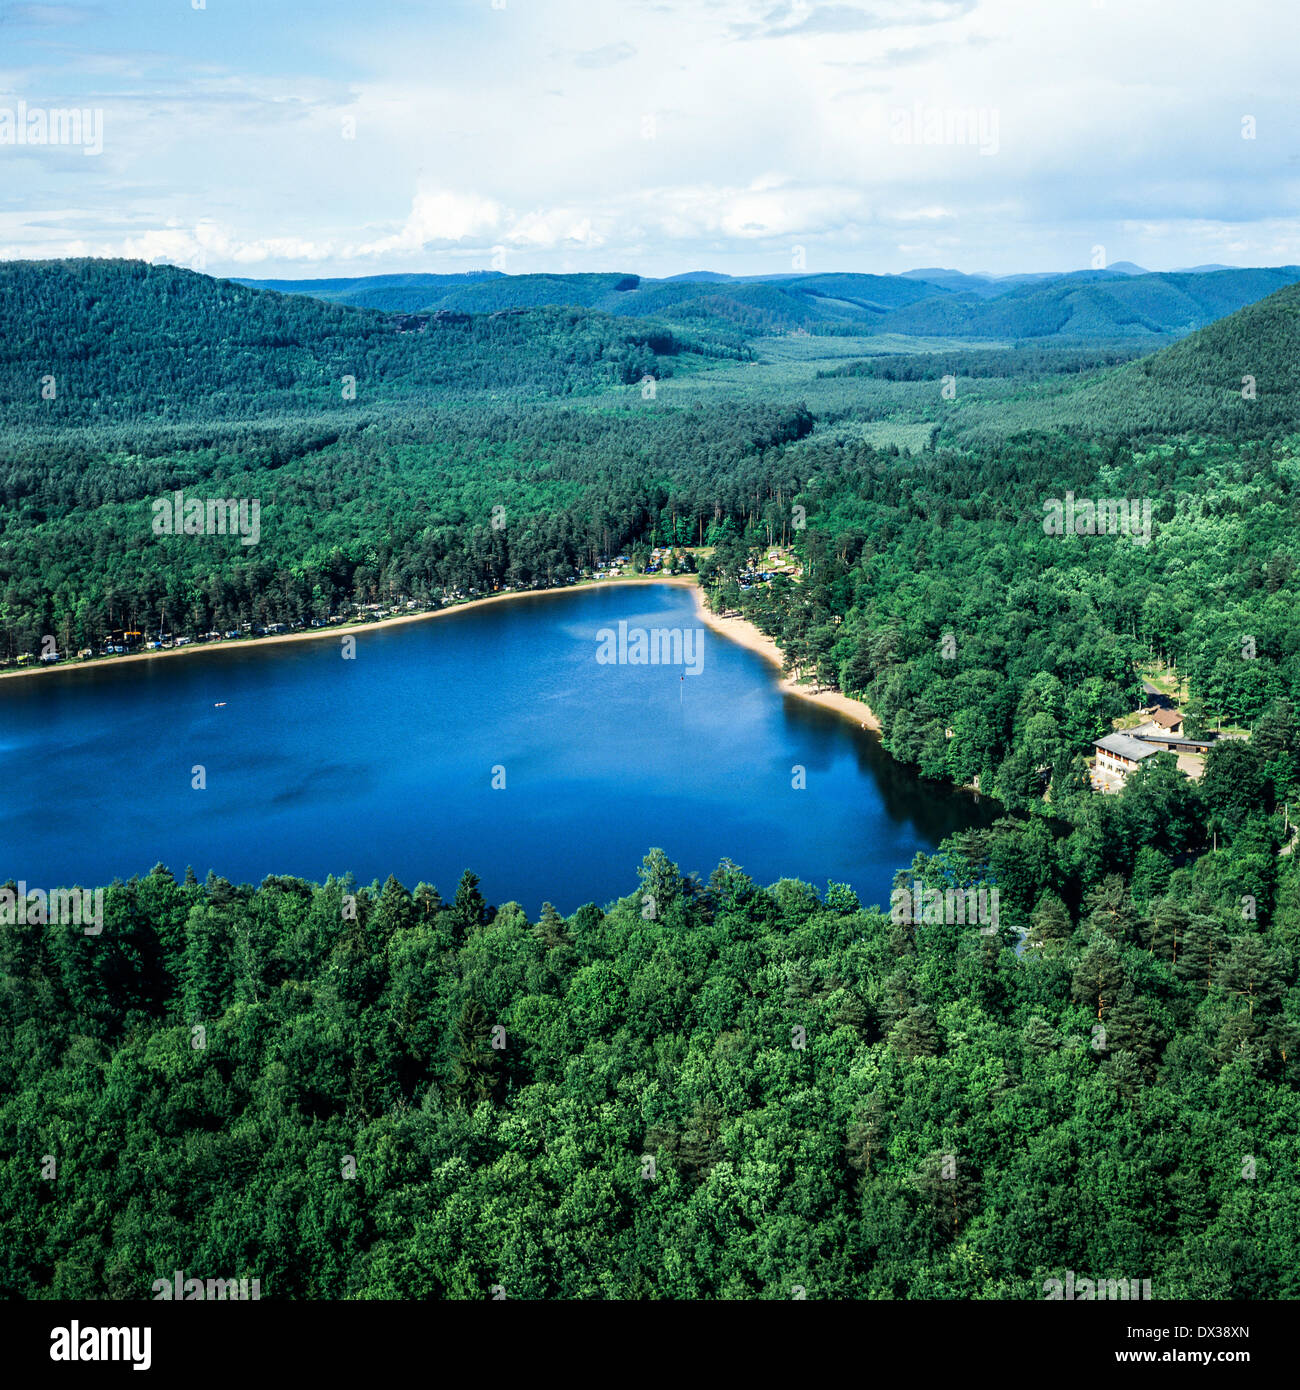 Aerial of Hanau lake in Vosges mountains Moselle Lorraine France - Stock Image